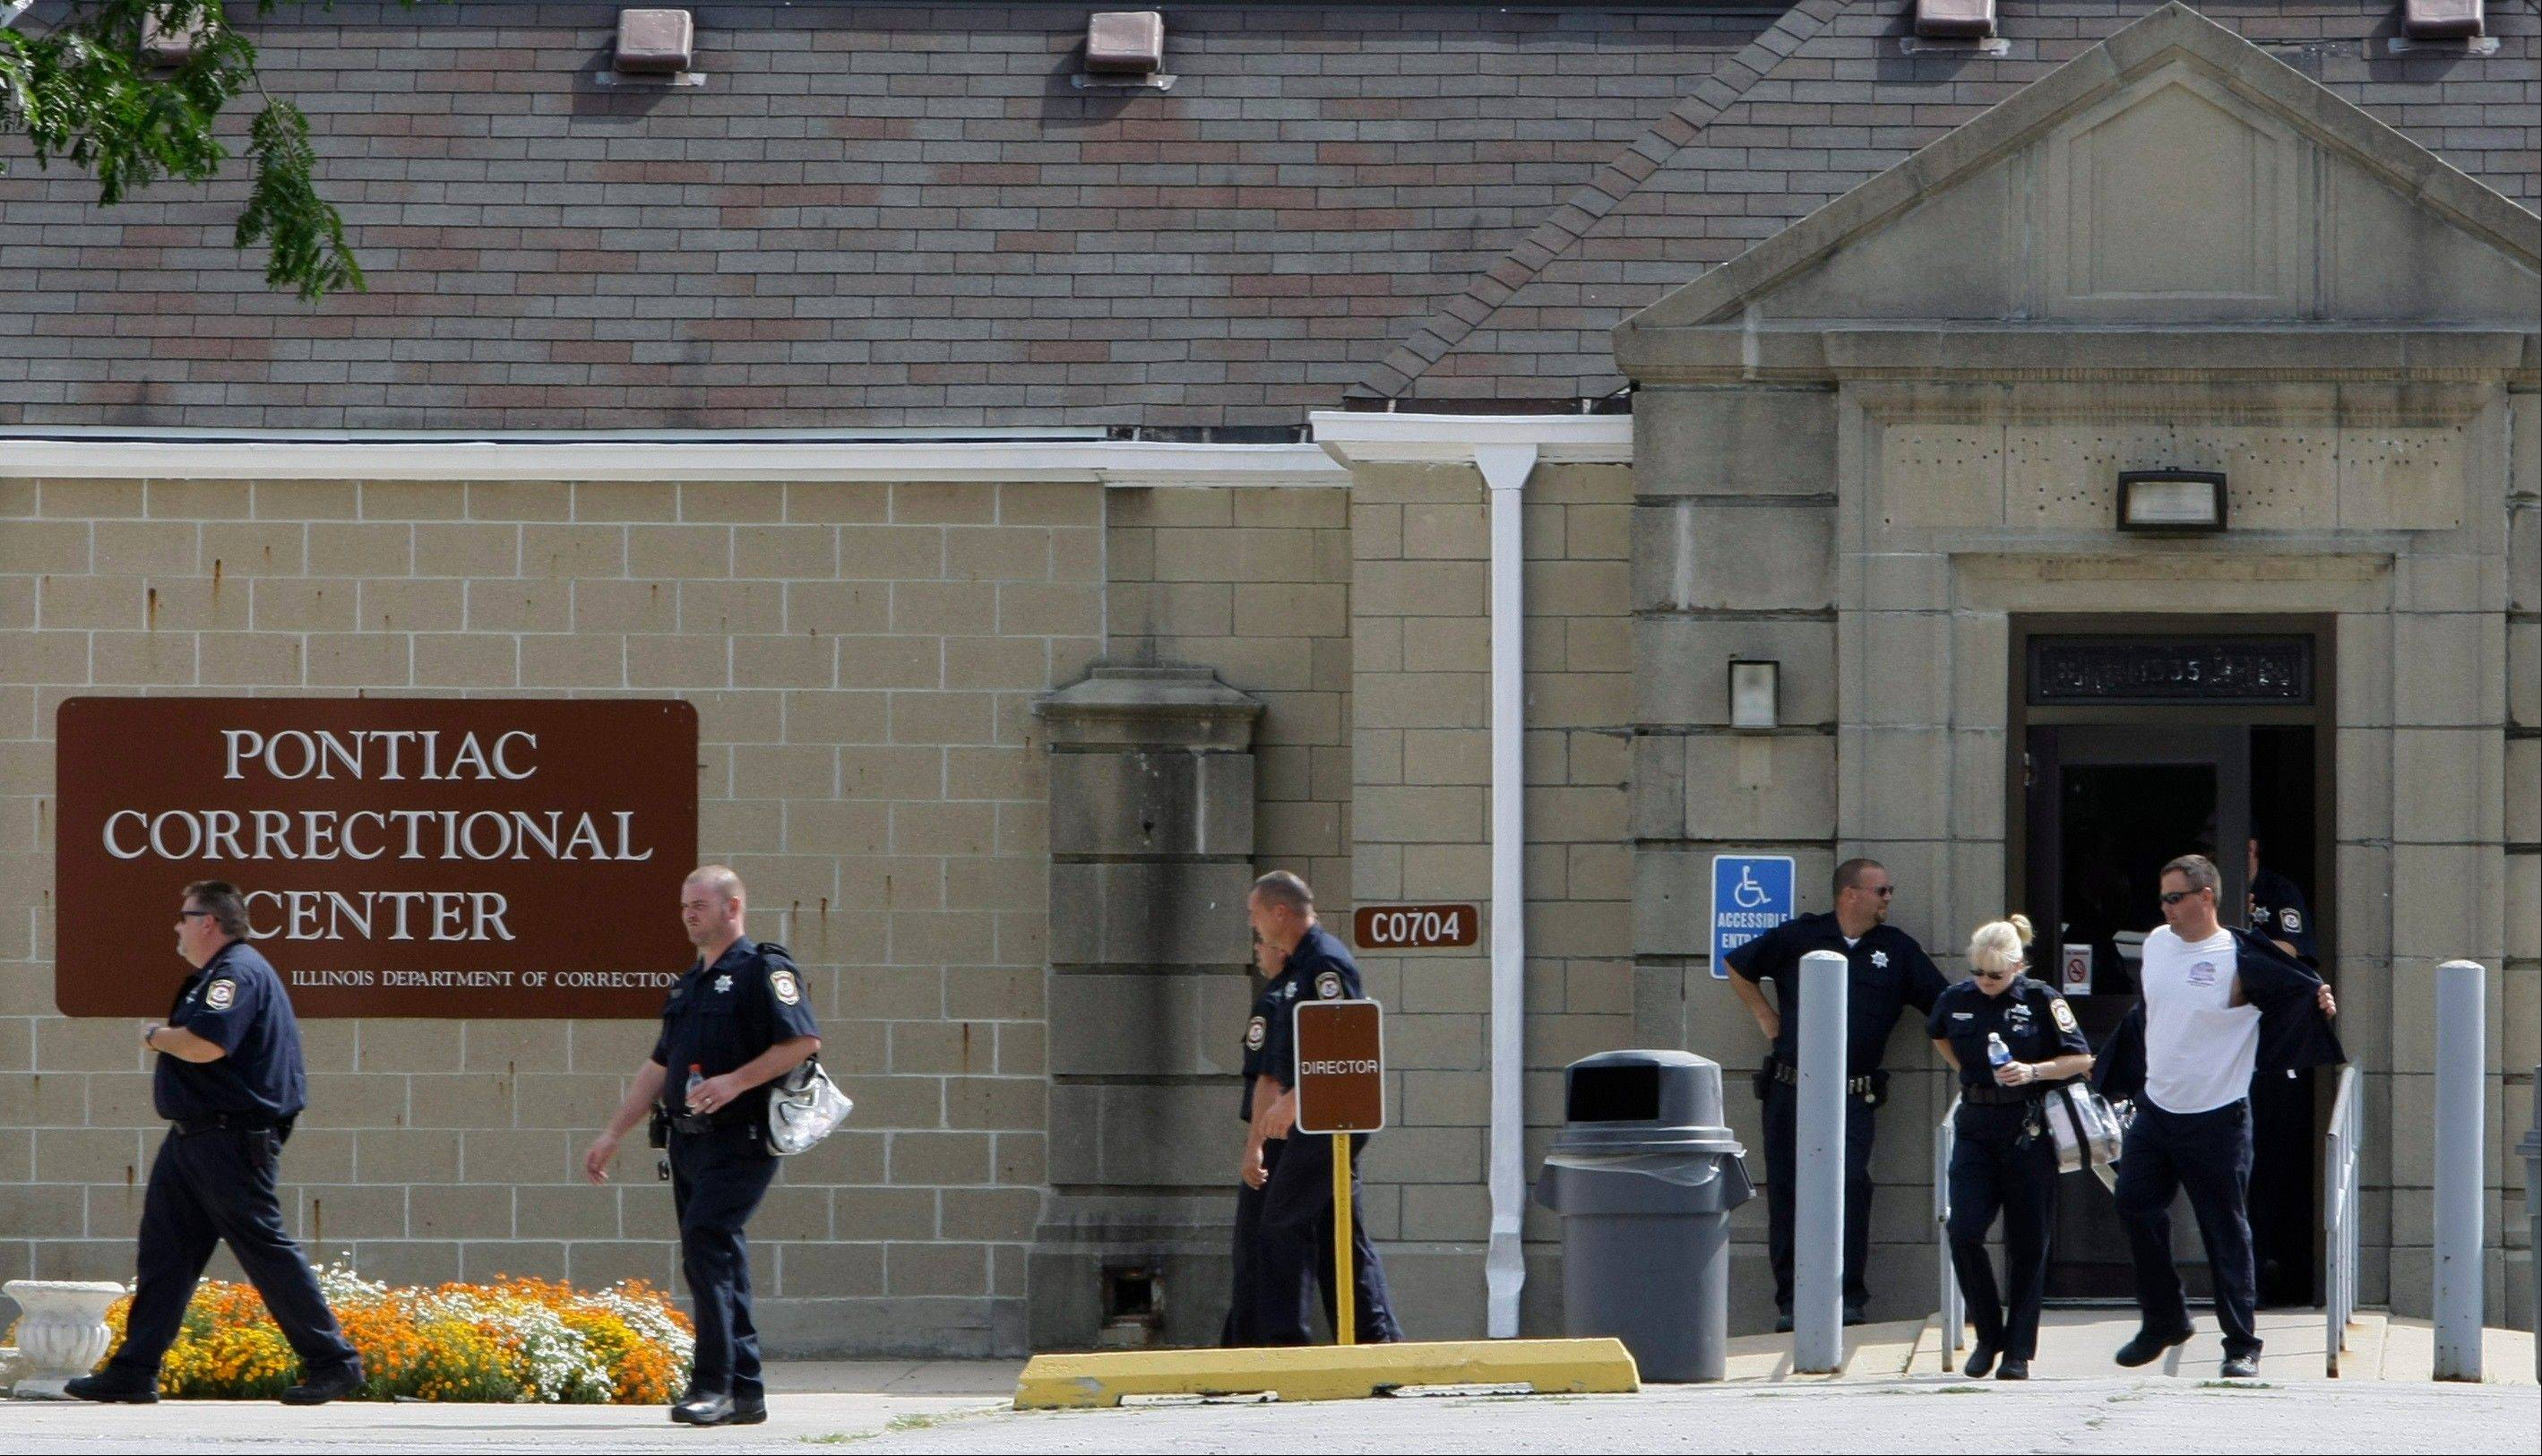 Correction officers leave the Pontiac Correctional Center in Pontiac, Ill. While top Chicago brass lobbies lawmakers to stiffen prison sentences for gun crimes -- meaning more inmates in crowded prisons -- The Associated Press has learned that overtime pay for those who guard those inmates jumped 34 percent last year.